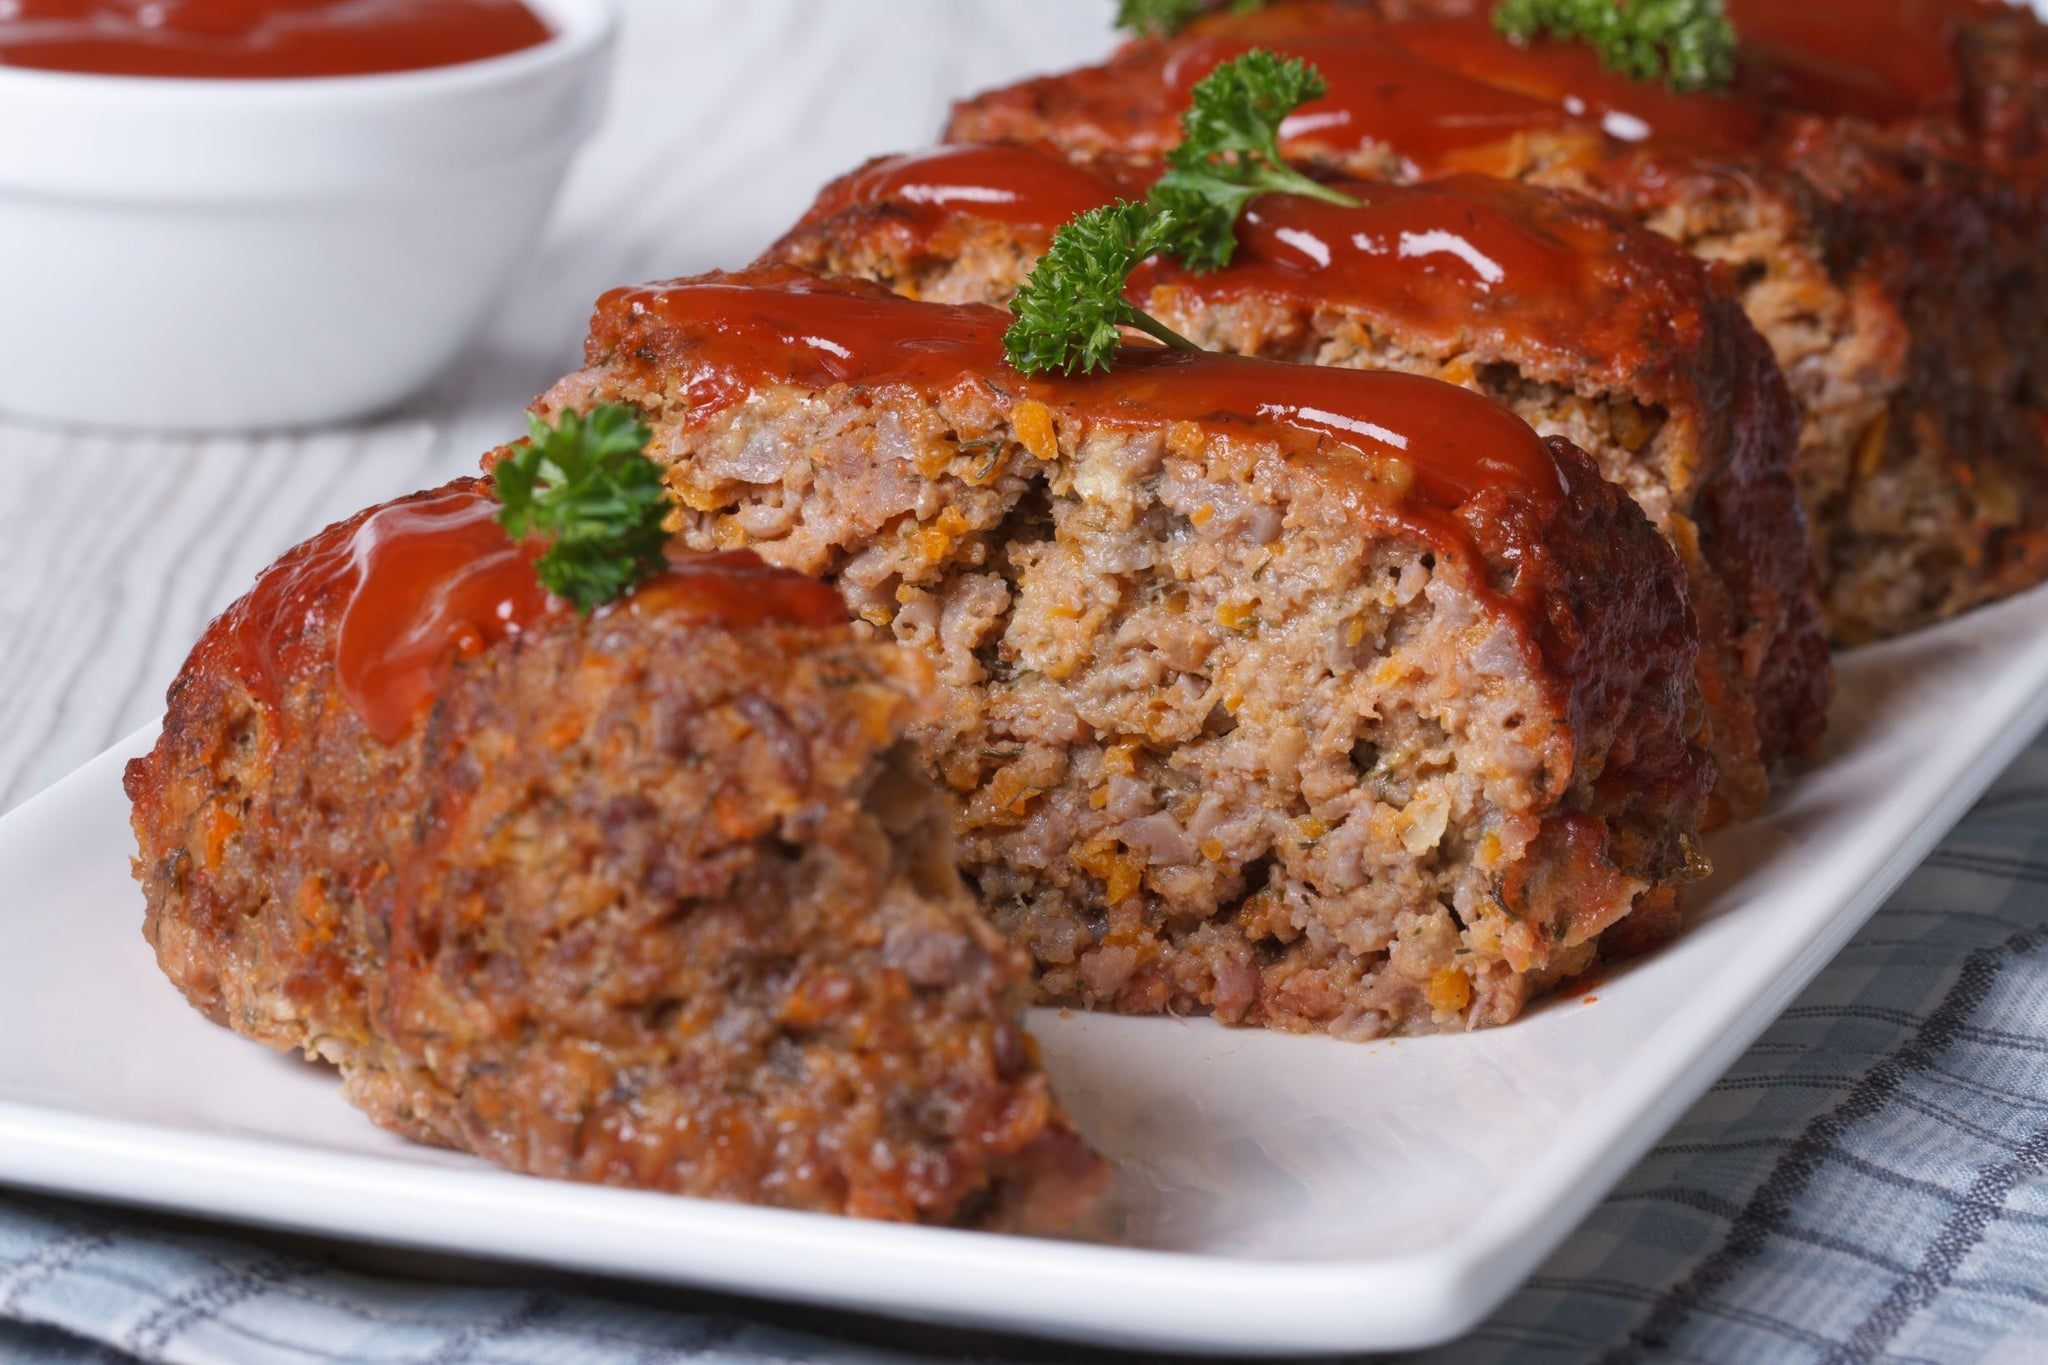 Sysco Reliance Frozen Old Fashioned Beef Meatloaf 28 oz Fully Cooked - 12 Pack [$13.75/each]